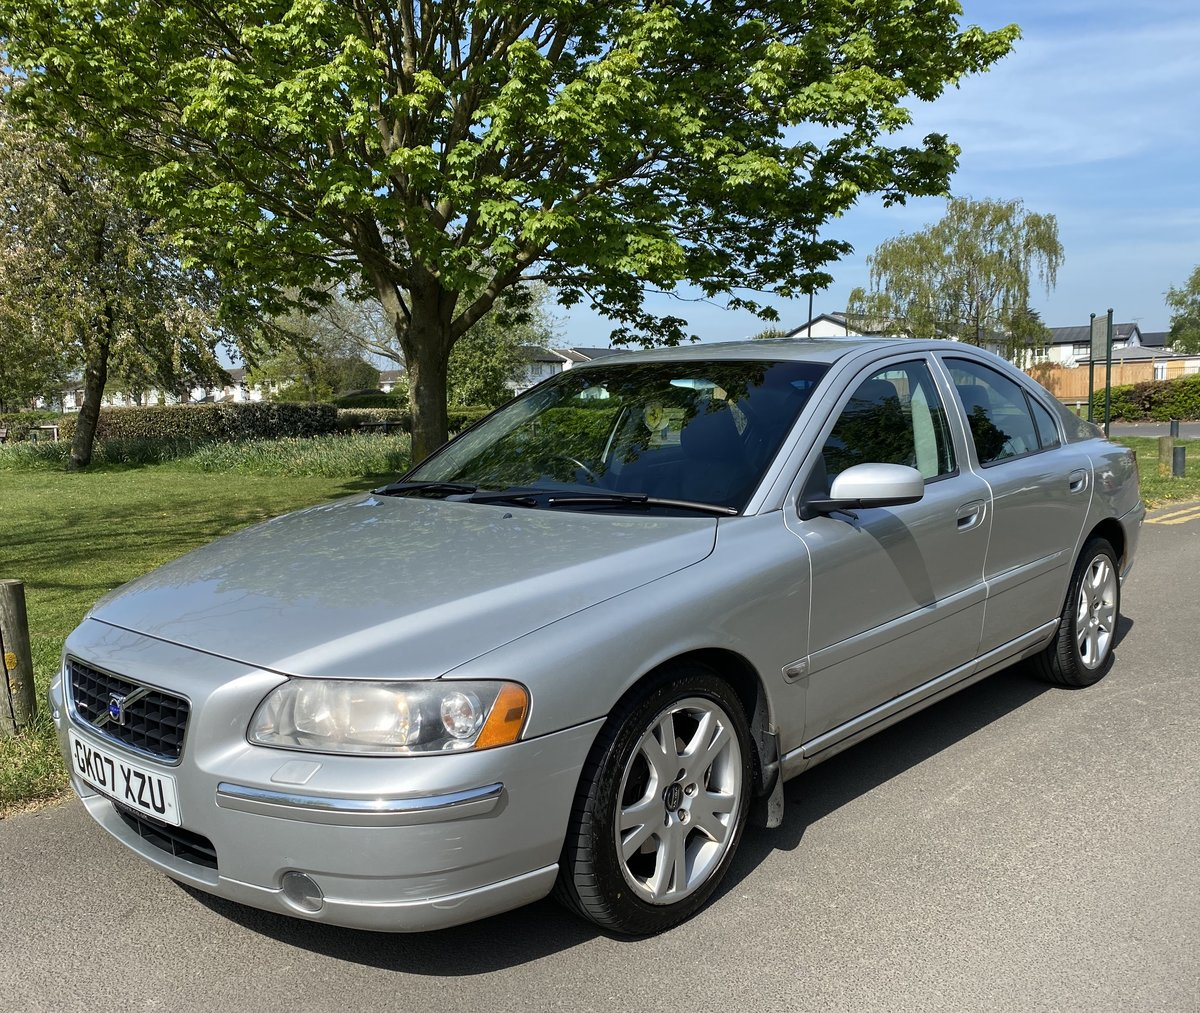 2007 Volvo S60 2.4D SE Auto 160BHP Excellent condition For Sale (picture 1 of 6)